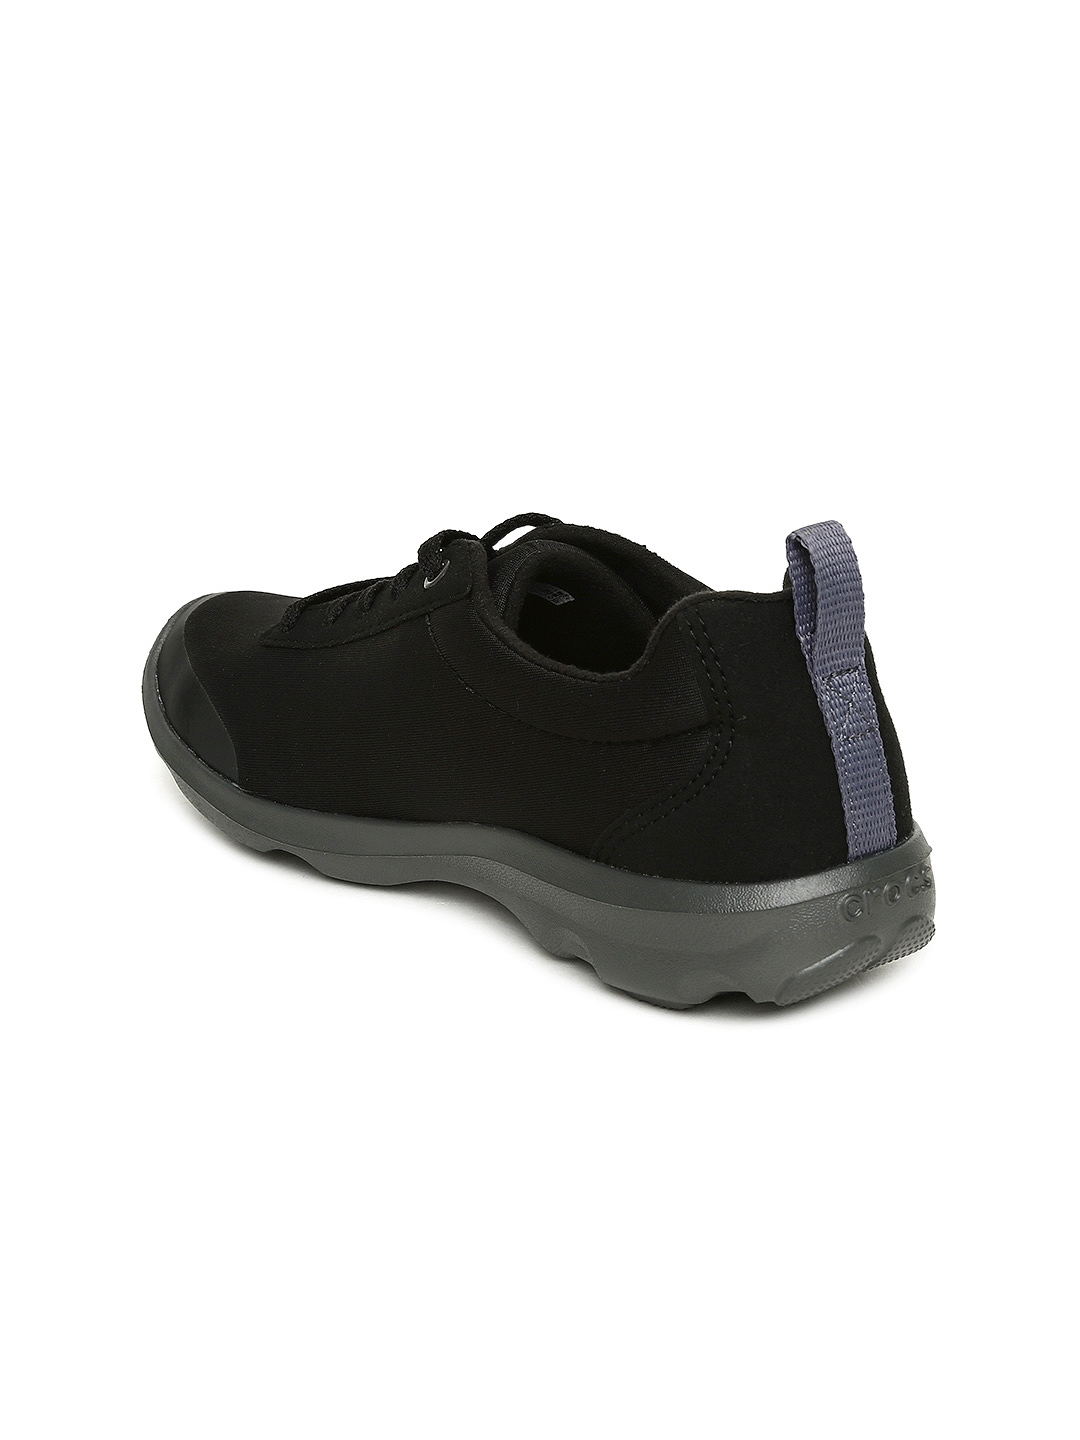 0900ed48208b06 Buy Crocs Women Black Busy Day Stretch Sneakers - Casual Shoes for ...